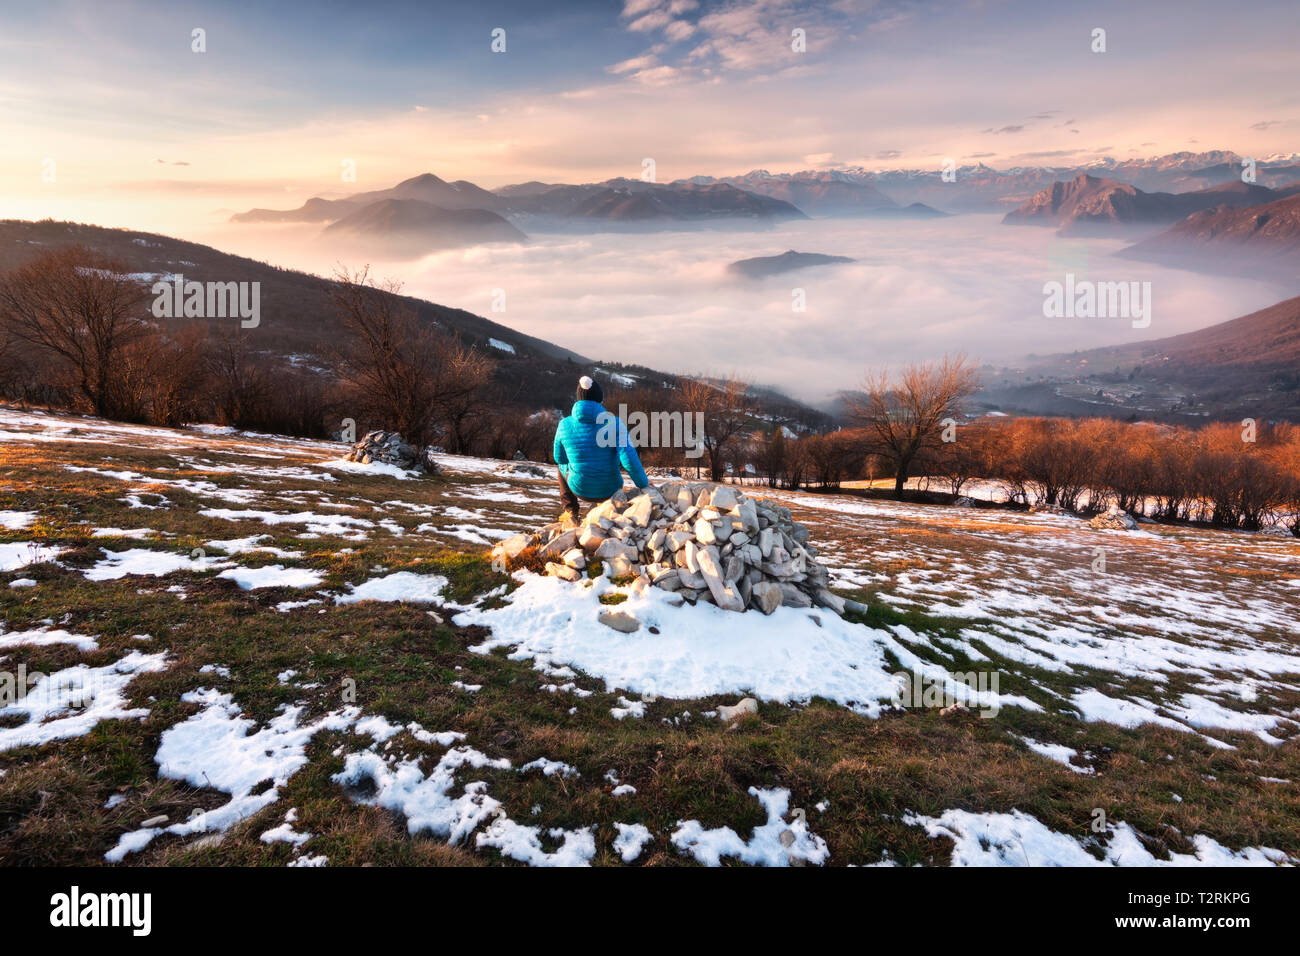 Admiring sunset over Iseo lake in Lombardy district, Brescia province, Italy, Europe - Stock Image